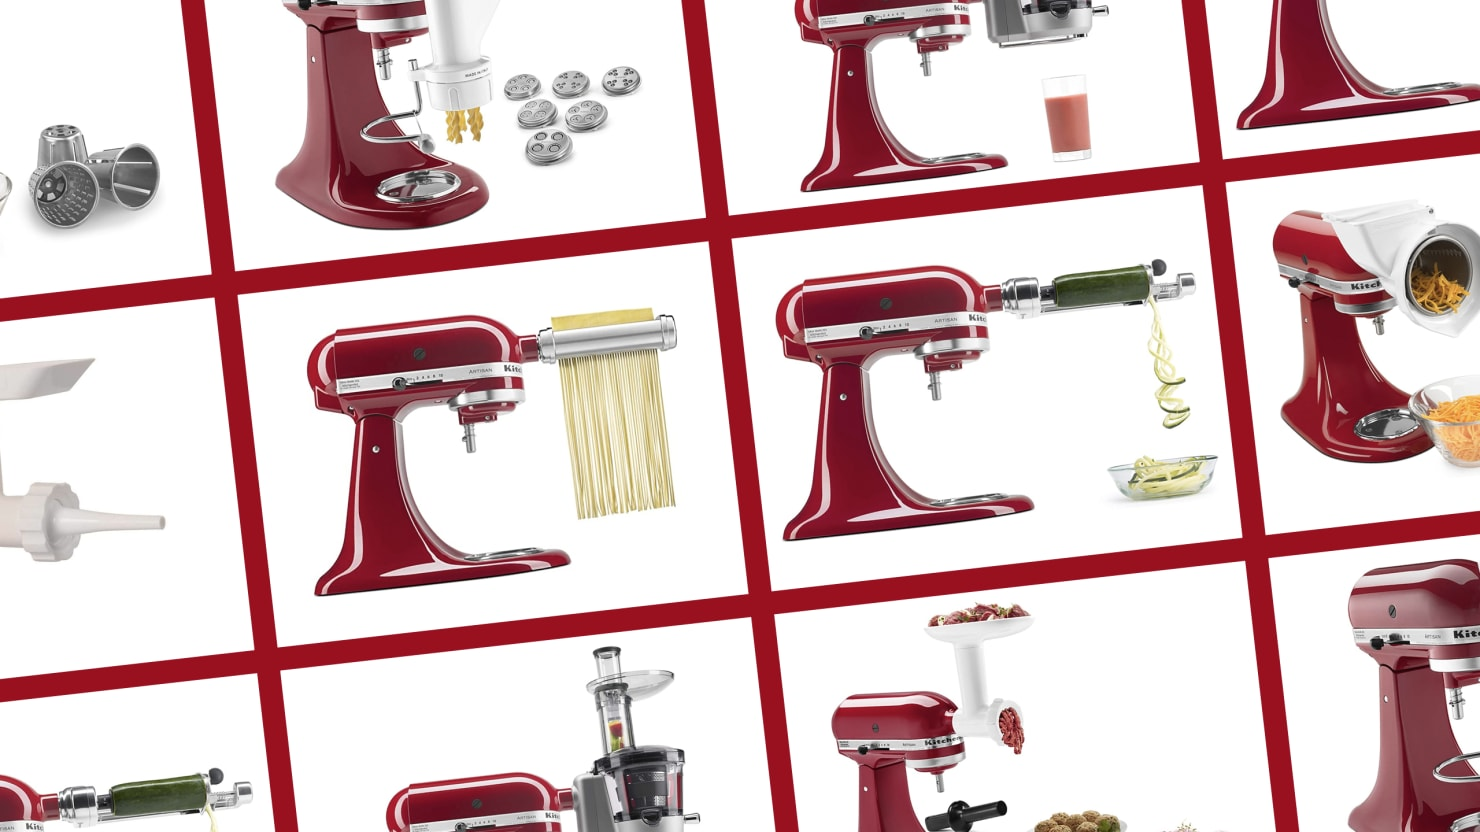 That Kitchen Aid You Use Twice a Year Can Also Make Pasta, Stuff Sausages, Spiralize, and Juice